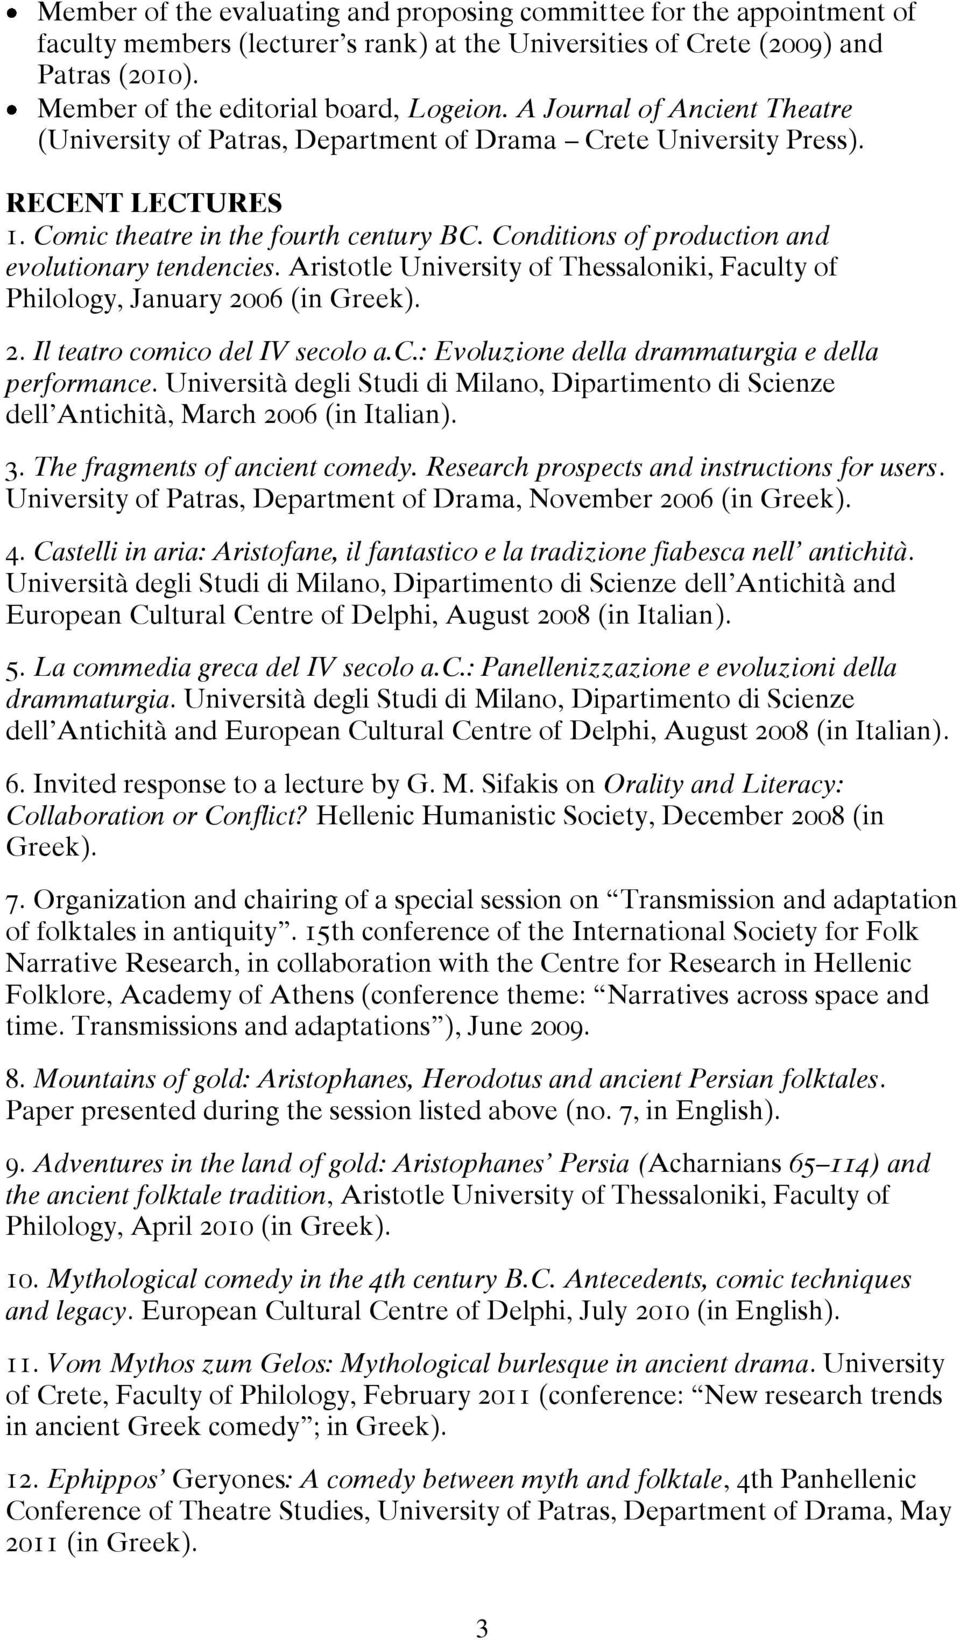 Conditions of production and evolutionary tendencies. Aristotle University of Thessaloniki, Faculty of Philology, January 2006 (in Greek). 2. Il teatro comico del IV secolo a.c.: Εvoluzione della drammaturgia e della performance.